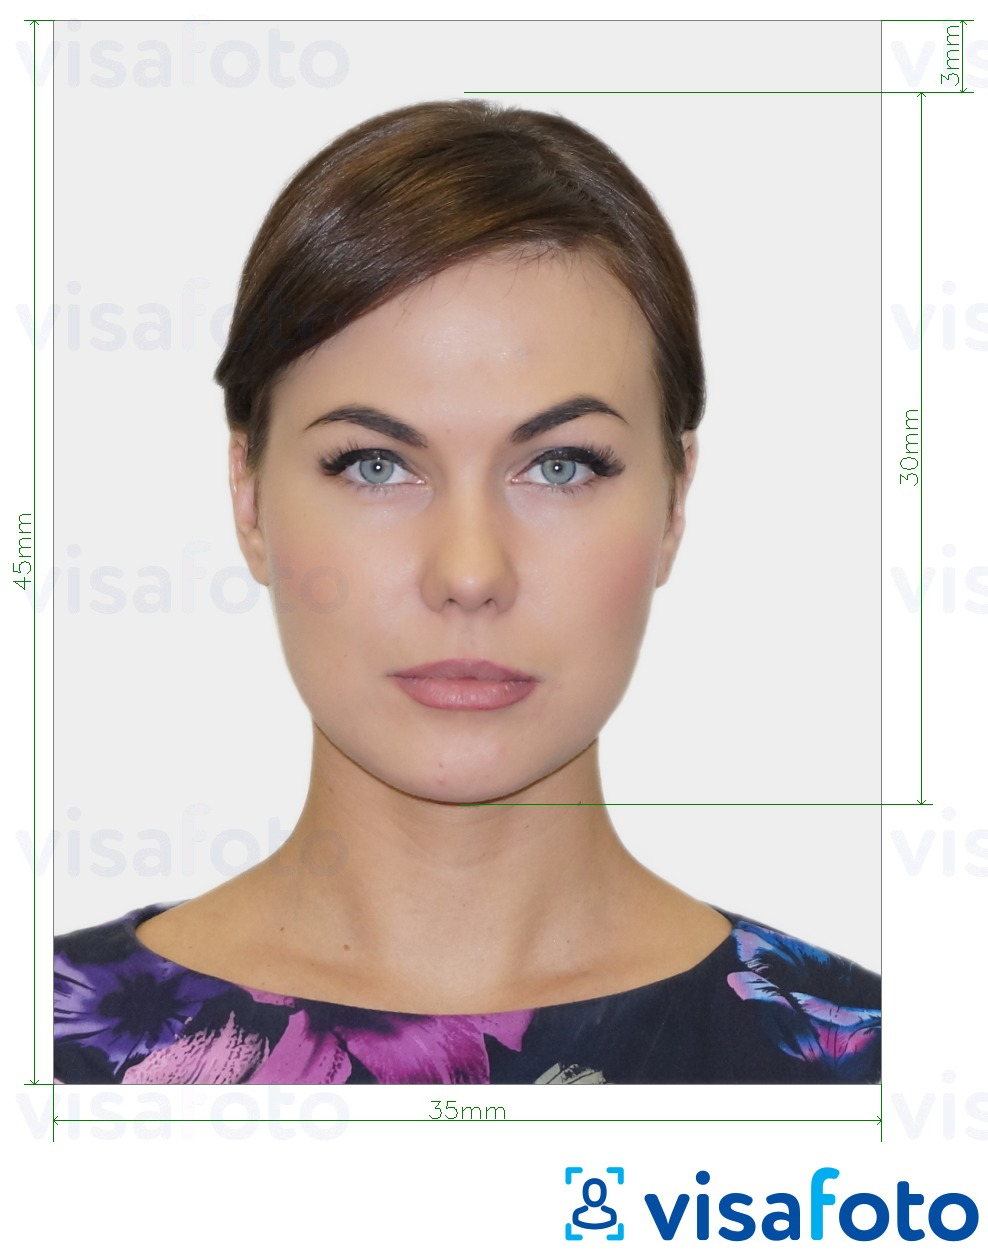 Example of photo for Bulgaria ID card (лична карта) 35x45mm (3.5x4.5 cm) with exact size specification